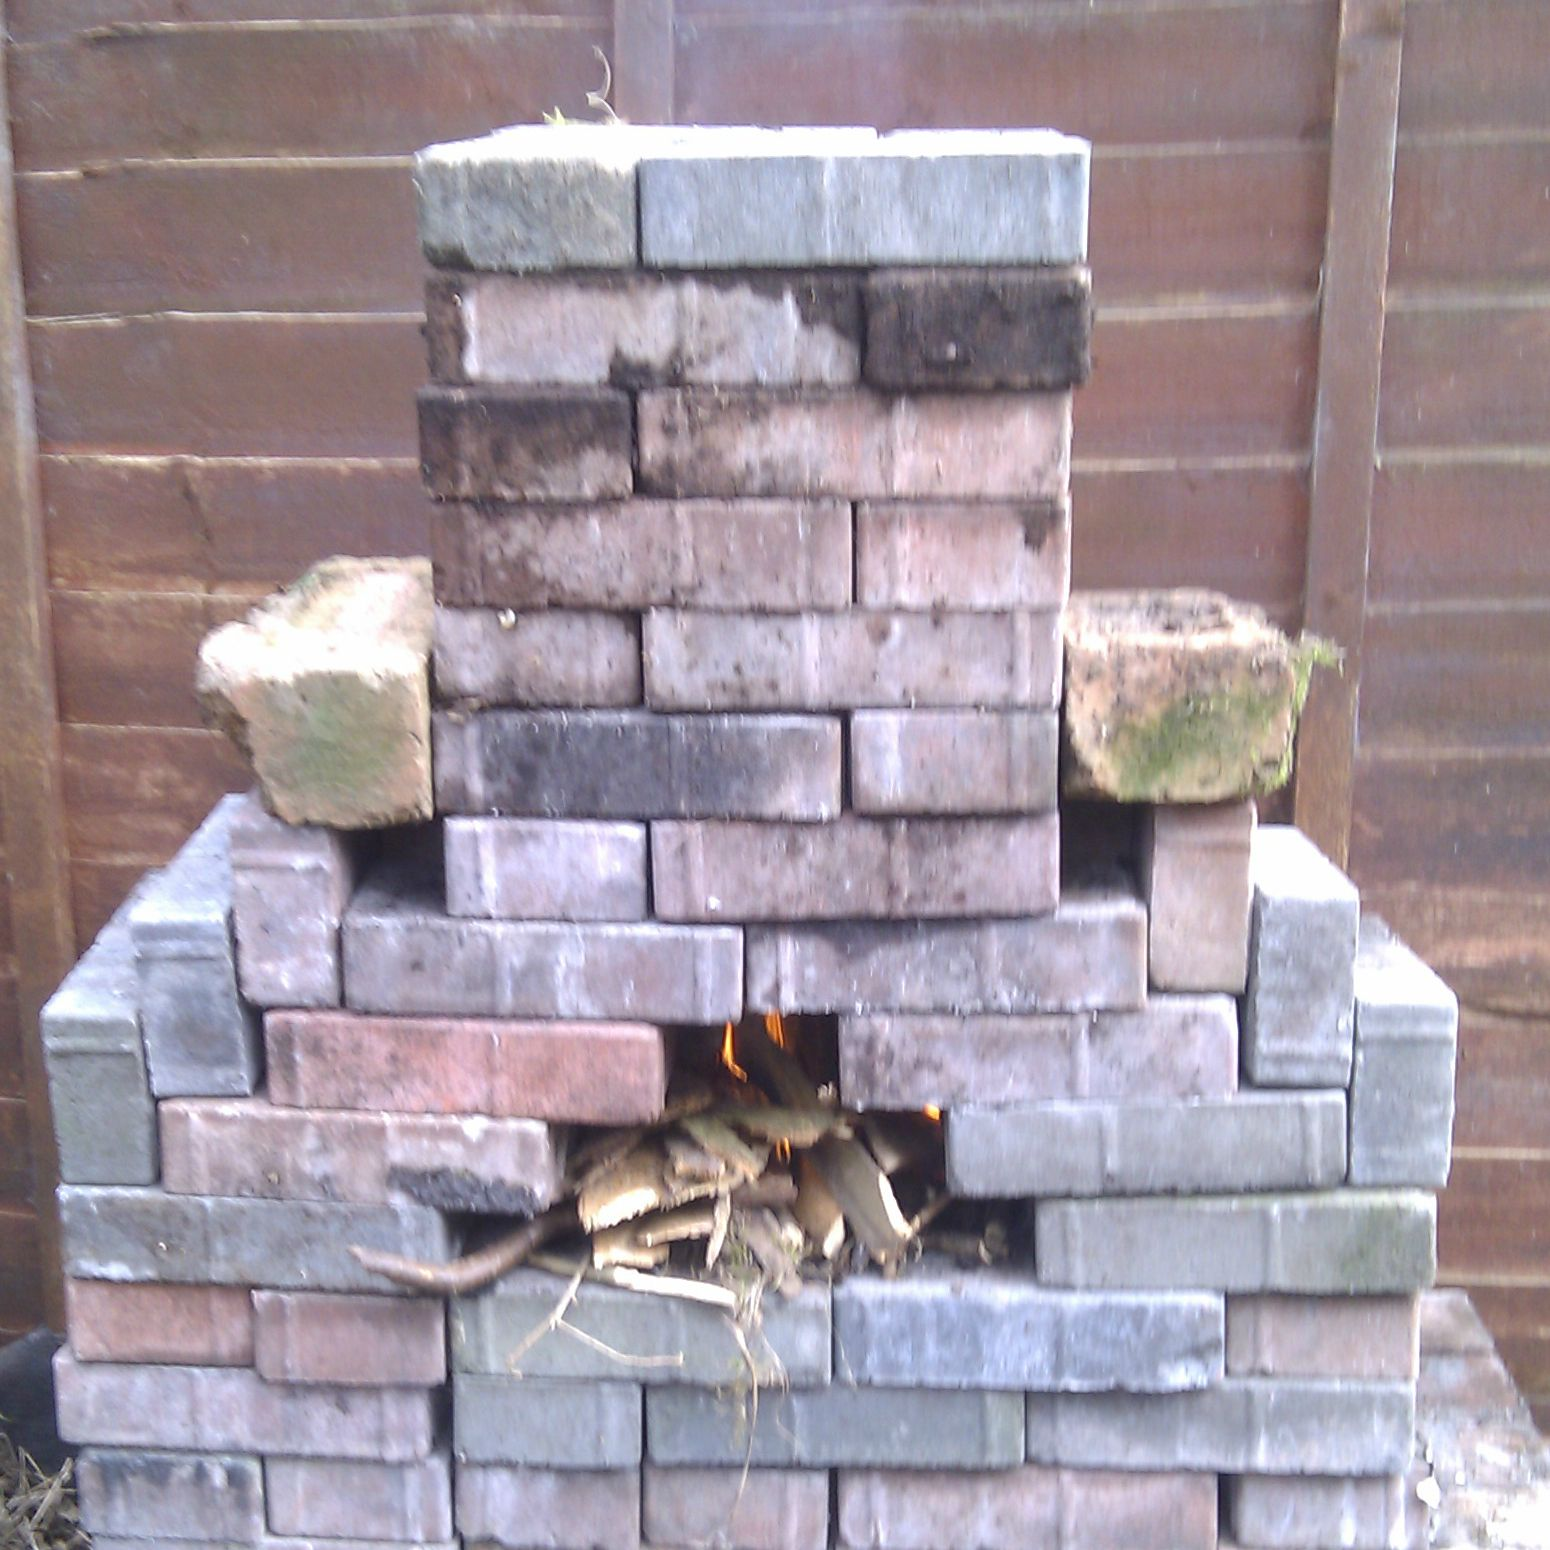 Brick Chiminea 0 1 It Works Too Lego For Grown Ups Version 0 2 Soon With Higher Burning Area Brick Crafts Chiminea Brick